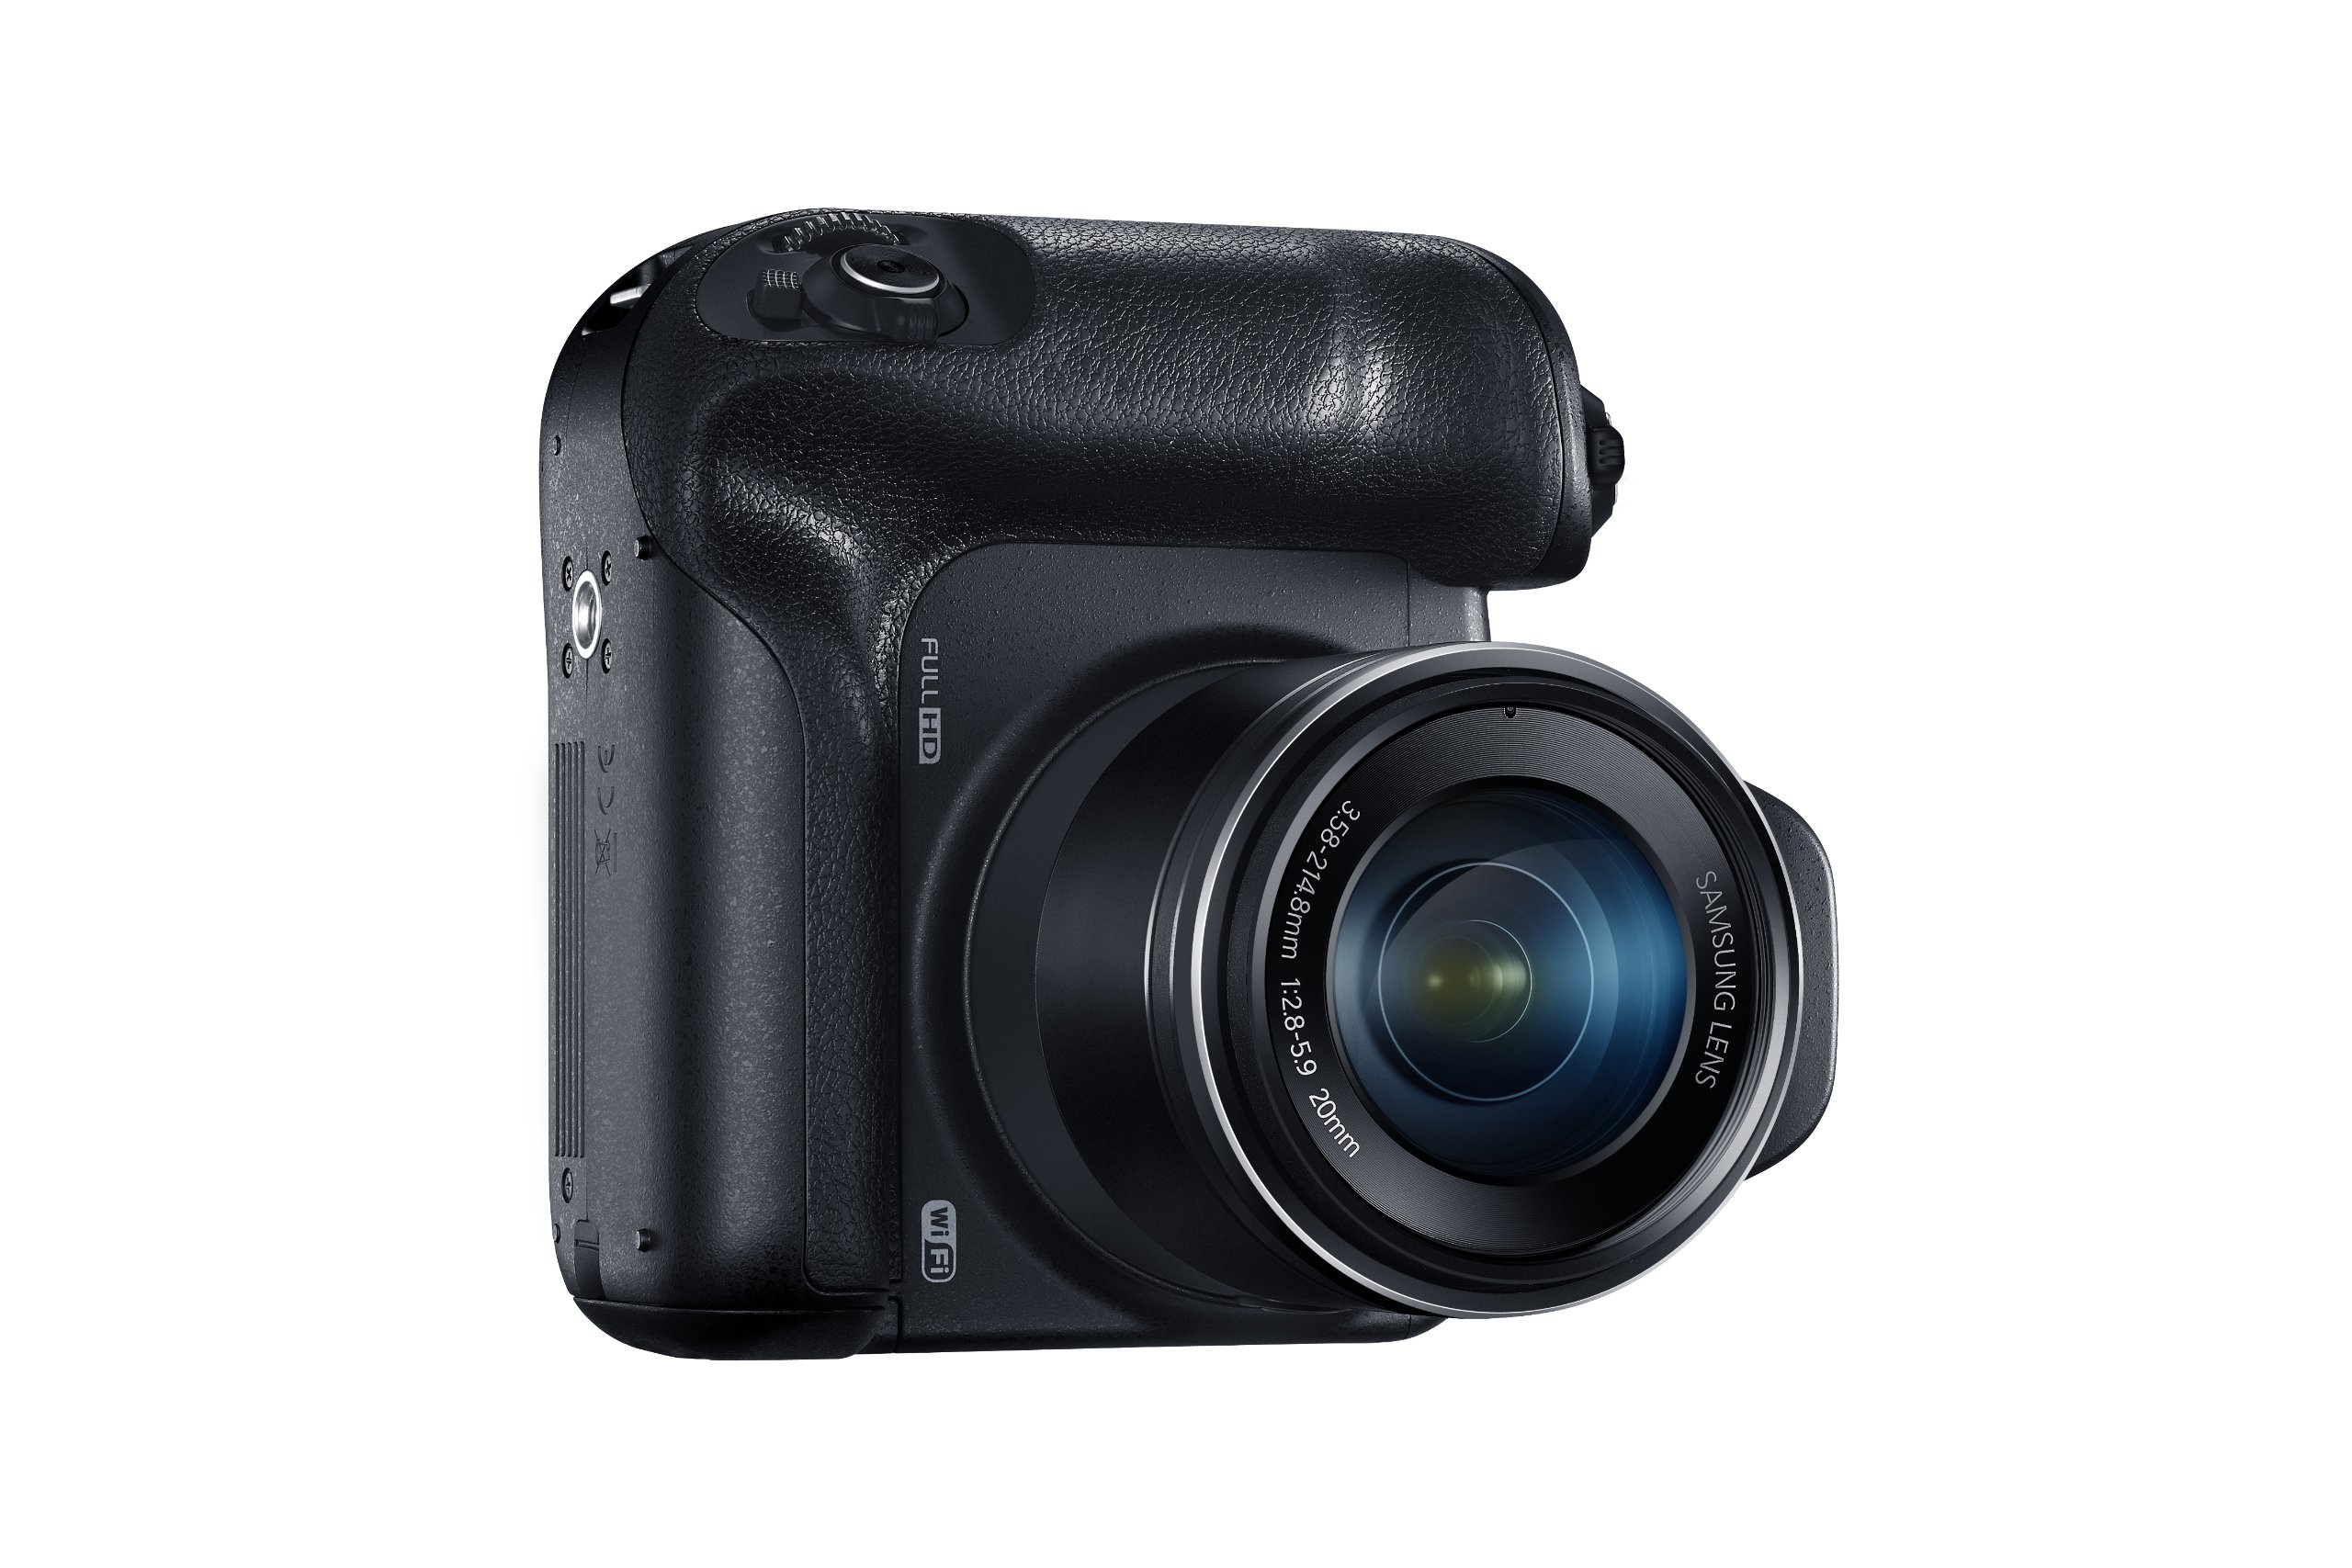 Samsung WB2200F 16.3MP CMOS Smart WiFi & NFC Digital Camera with 60x Optical  Zoom, 3.0'' LCD and 1080p HD Video (Black) by Samsung (Image #6)